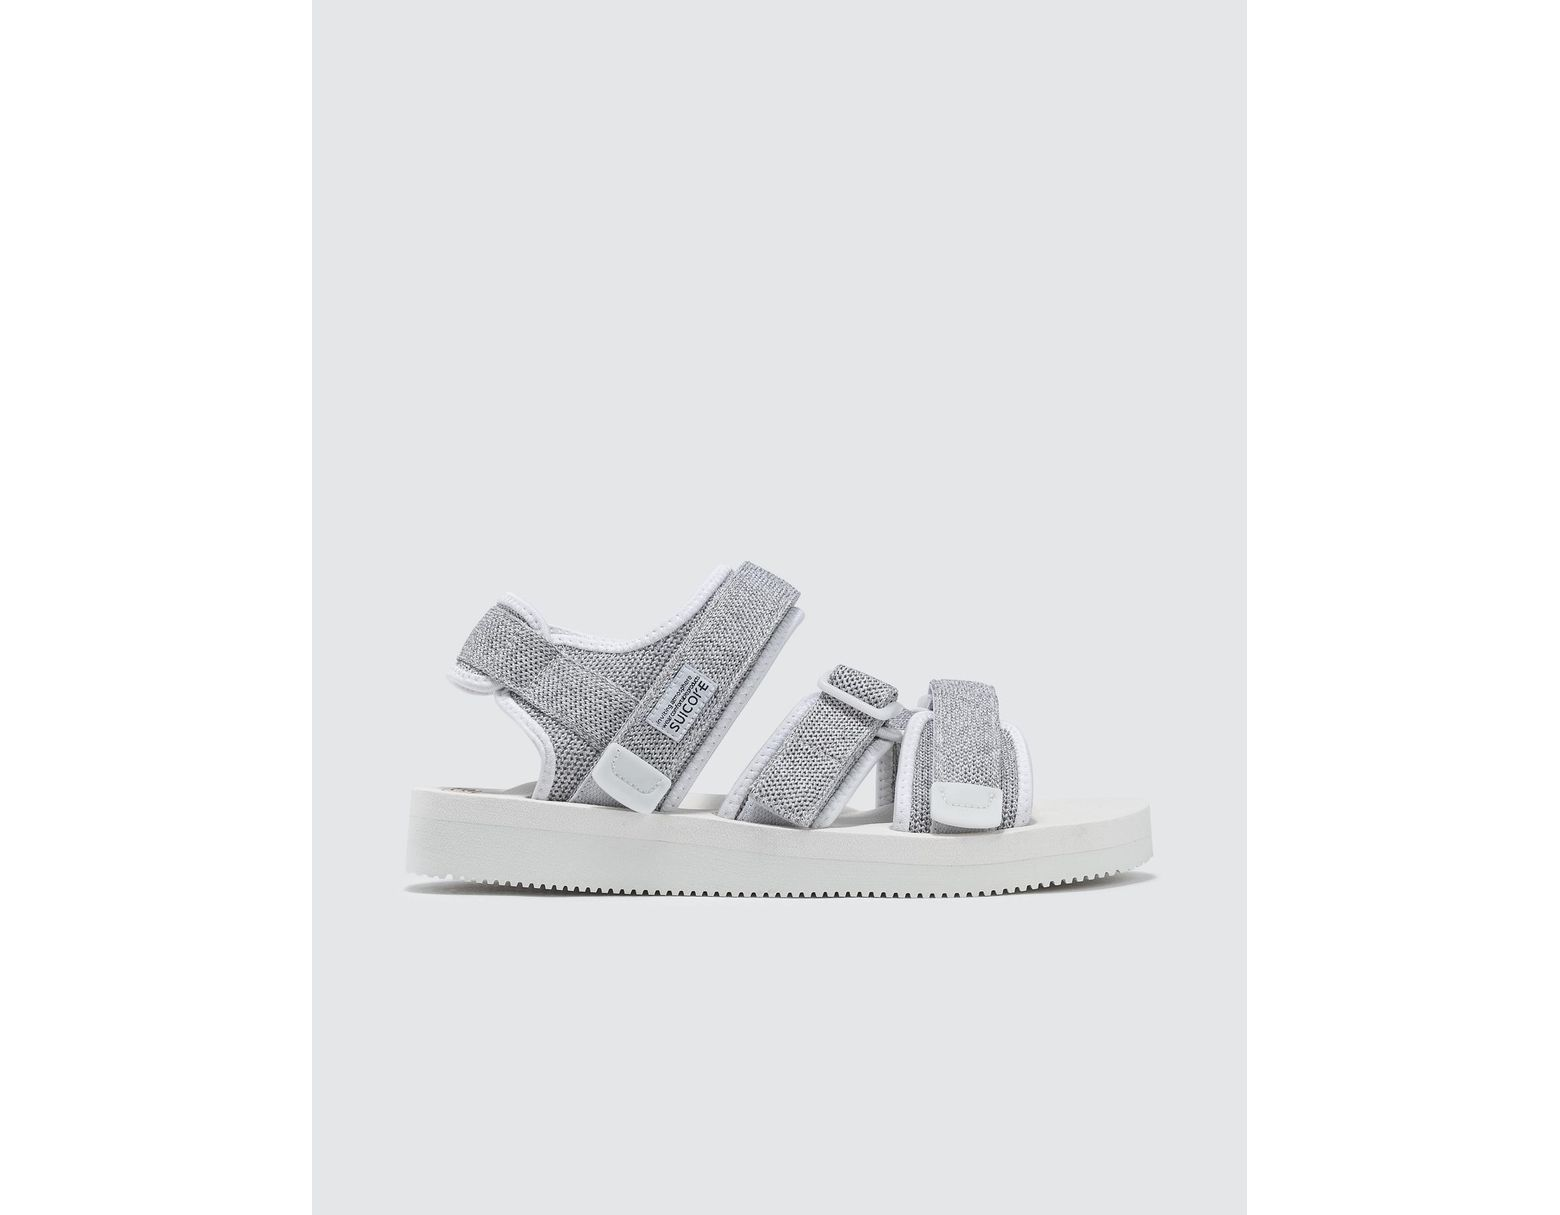 30e222b0a7 Suicoke Kisee-vkn Sandals in White for Men - Lyst